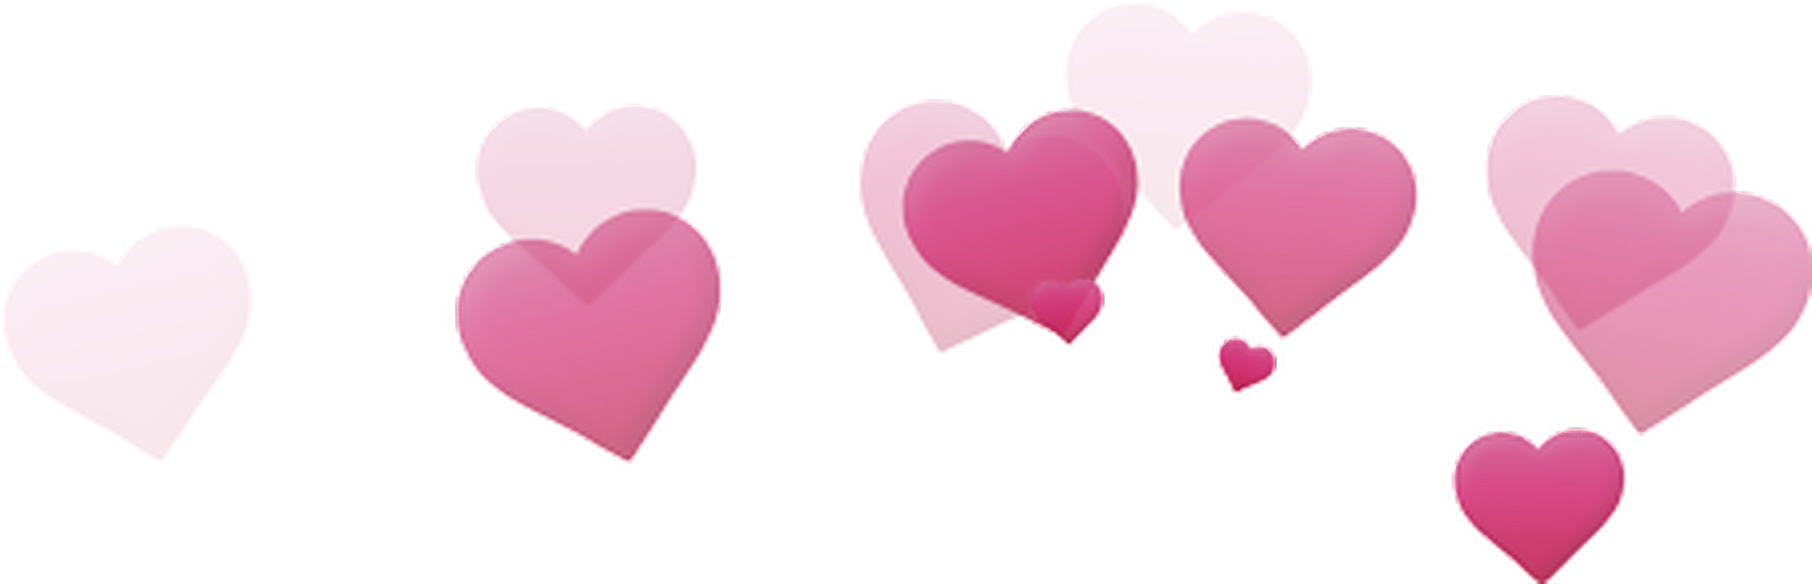 Hearts photo booth png. Tumblr pink photobooth filter